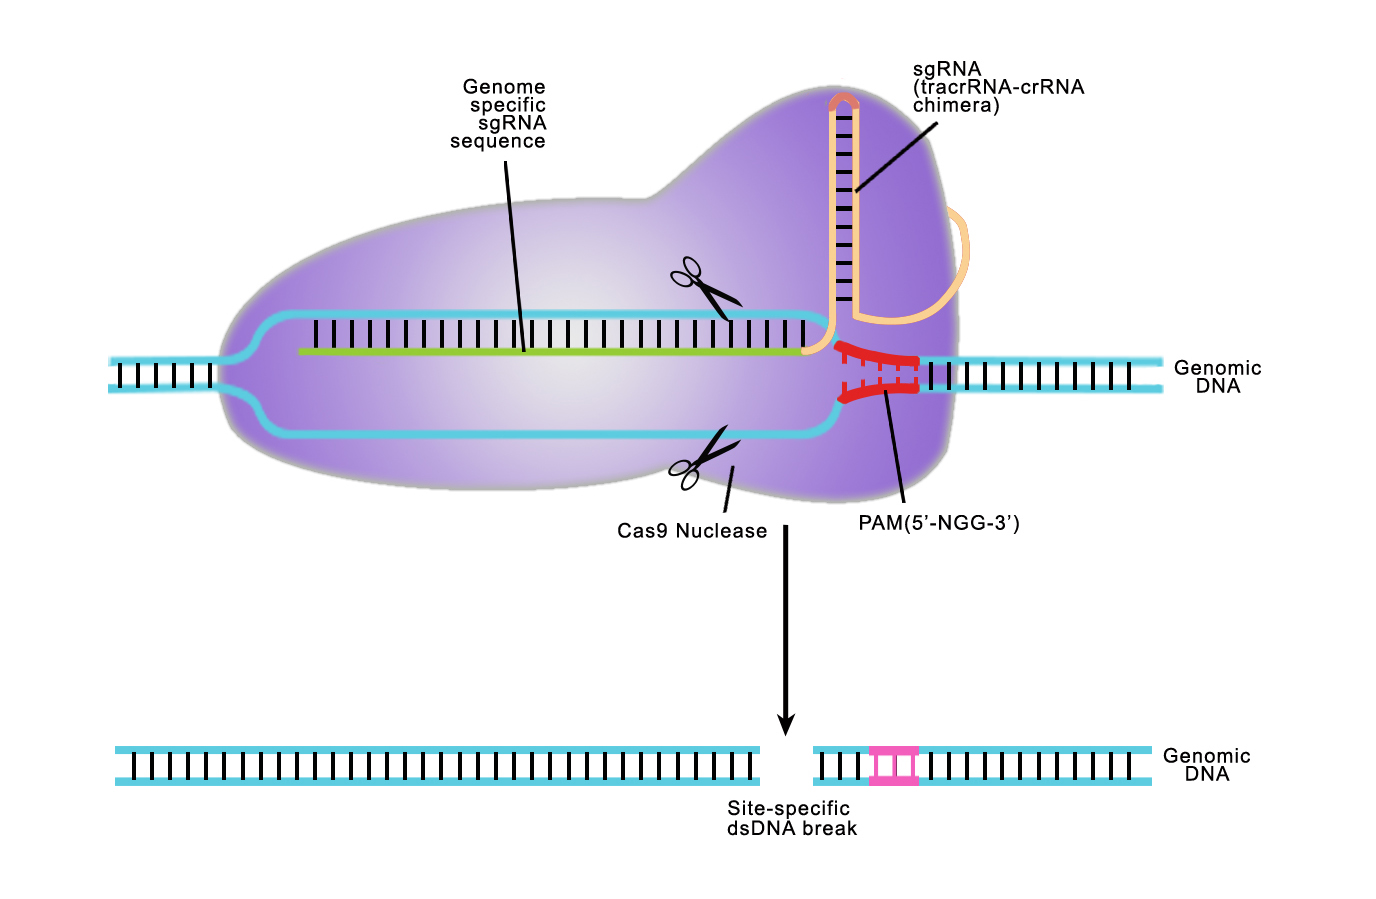 CRISPR/Cas 9 Genome editing and Engineering